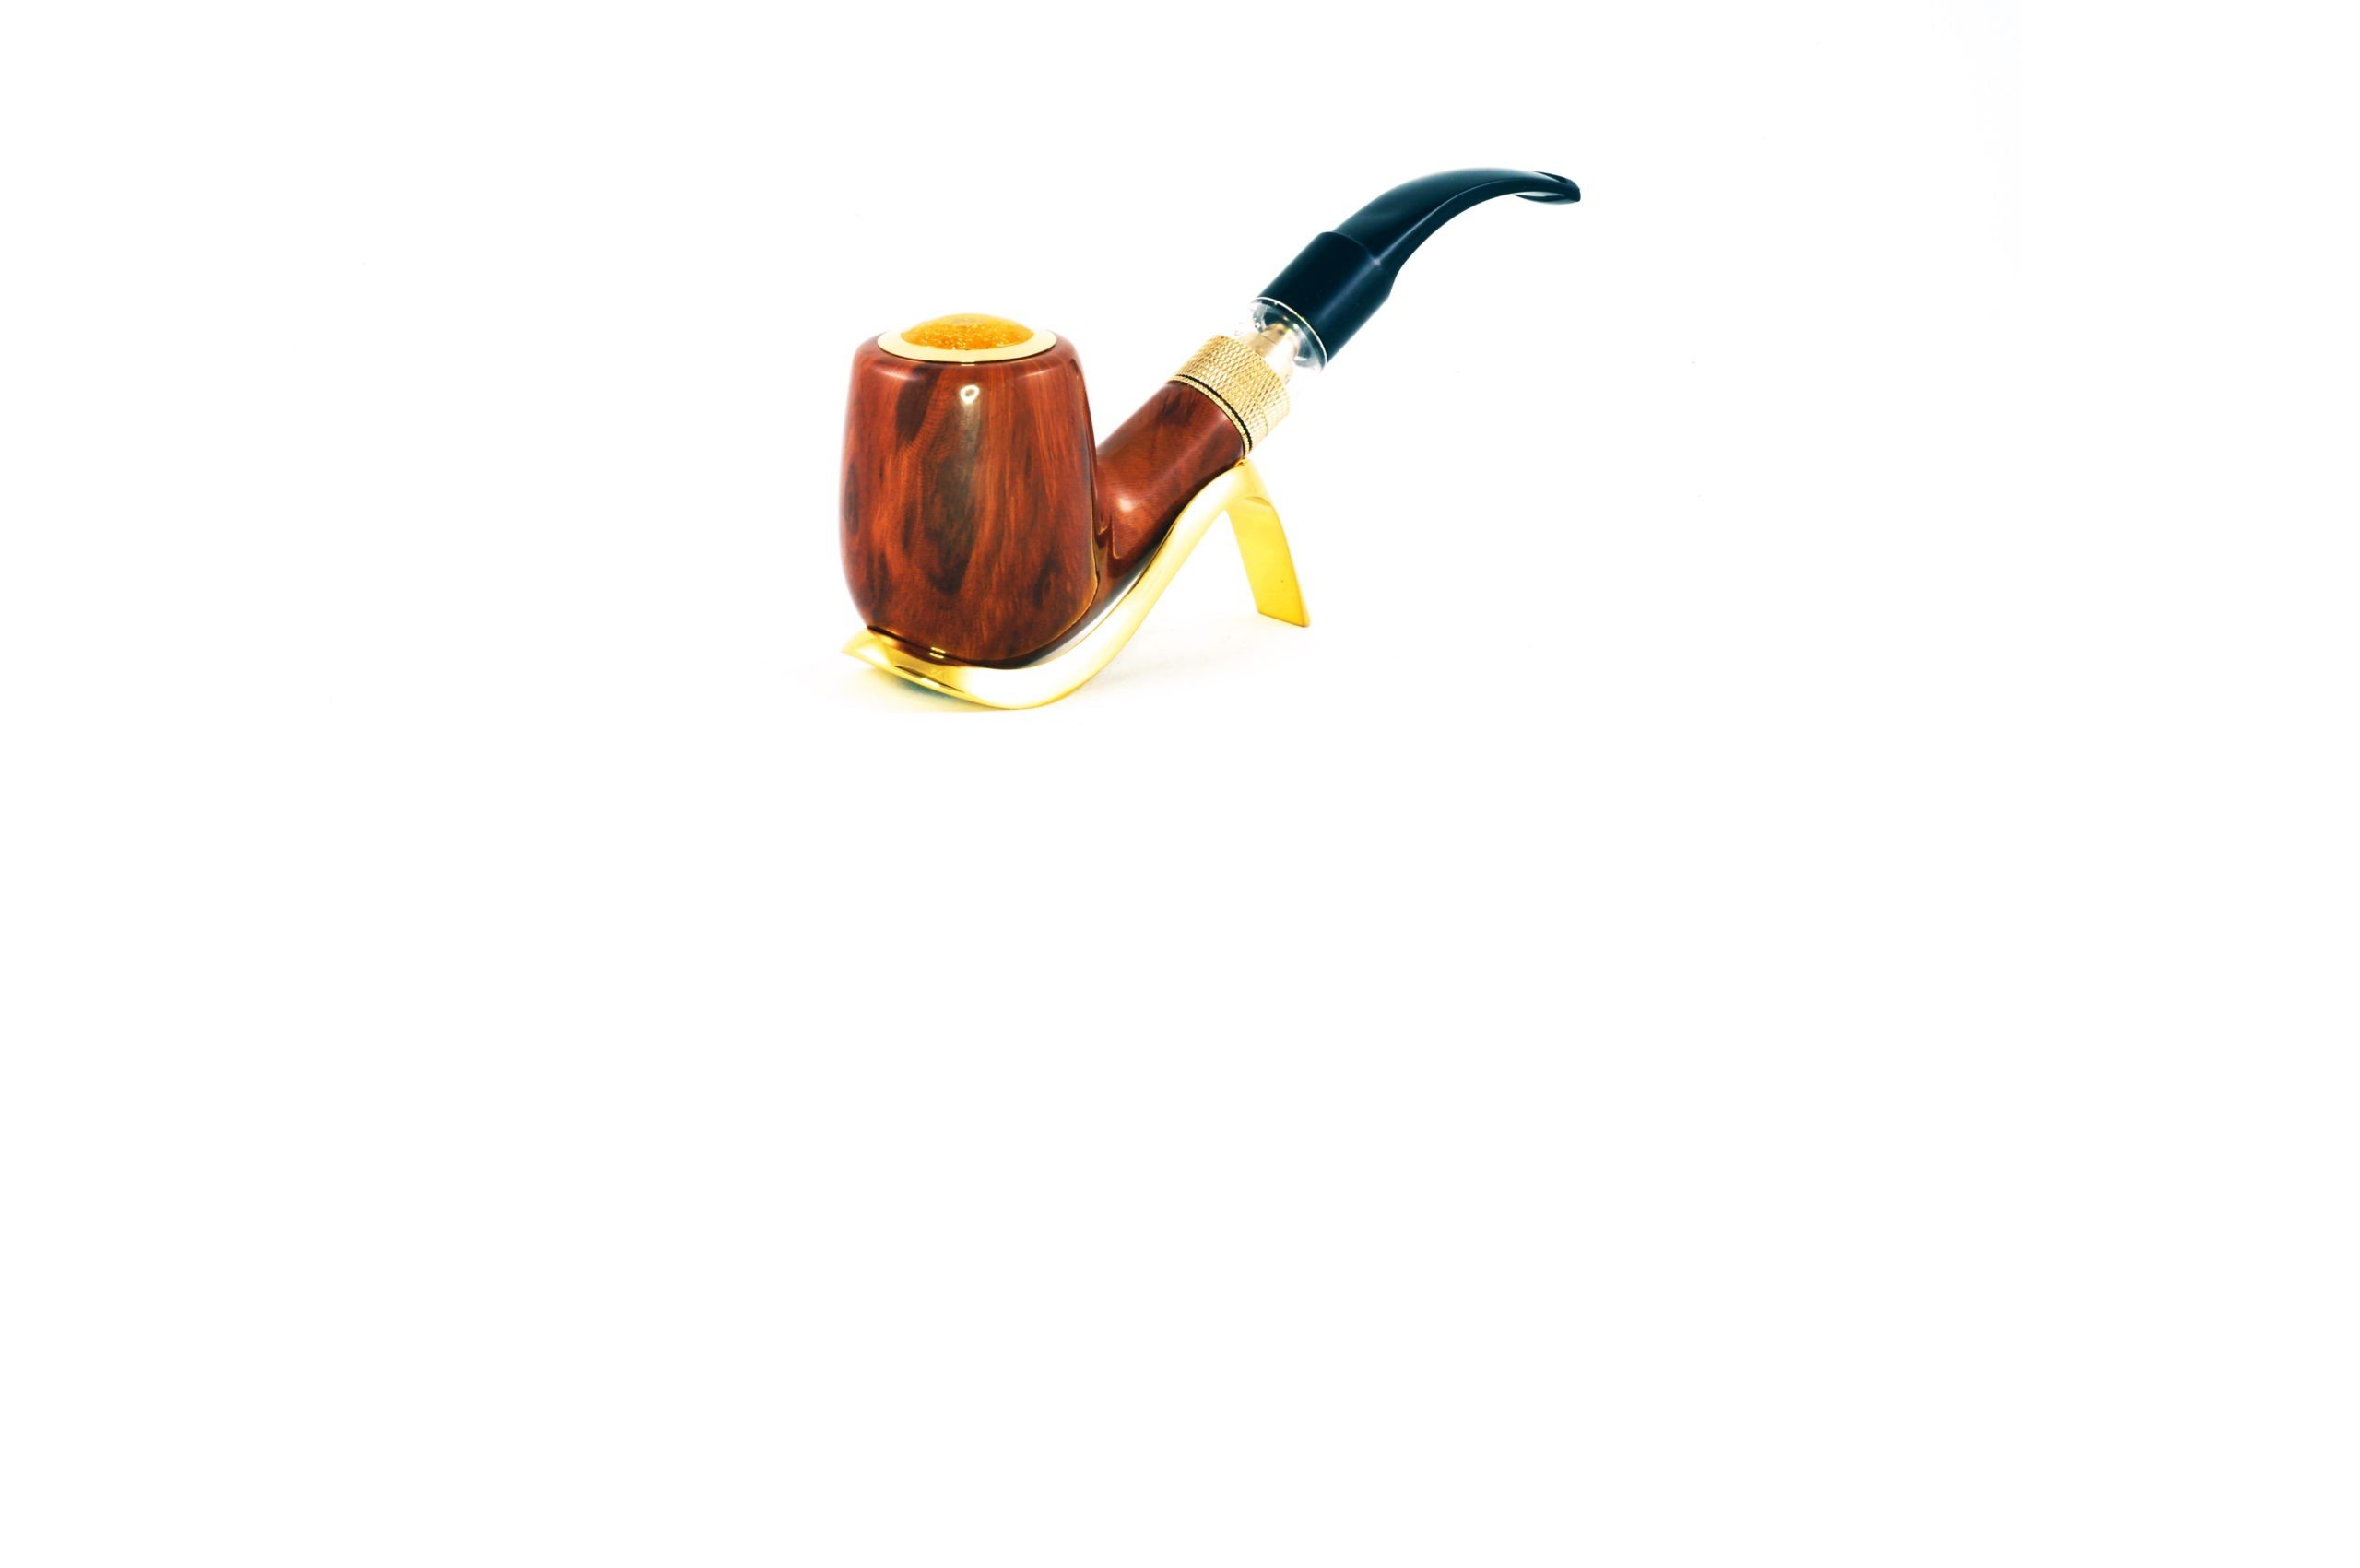 westminster e pipe from petersham pipes